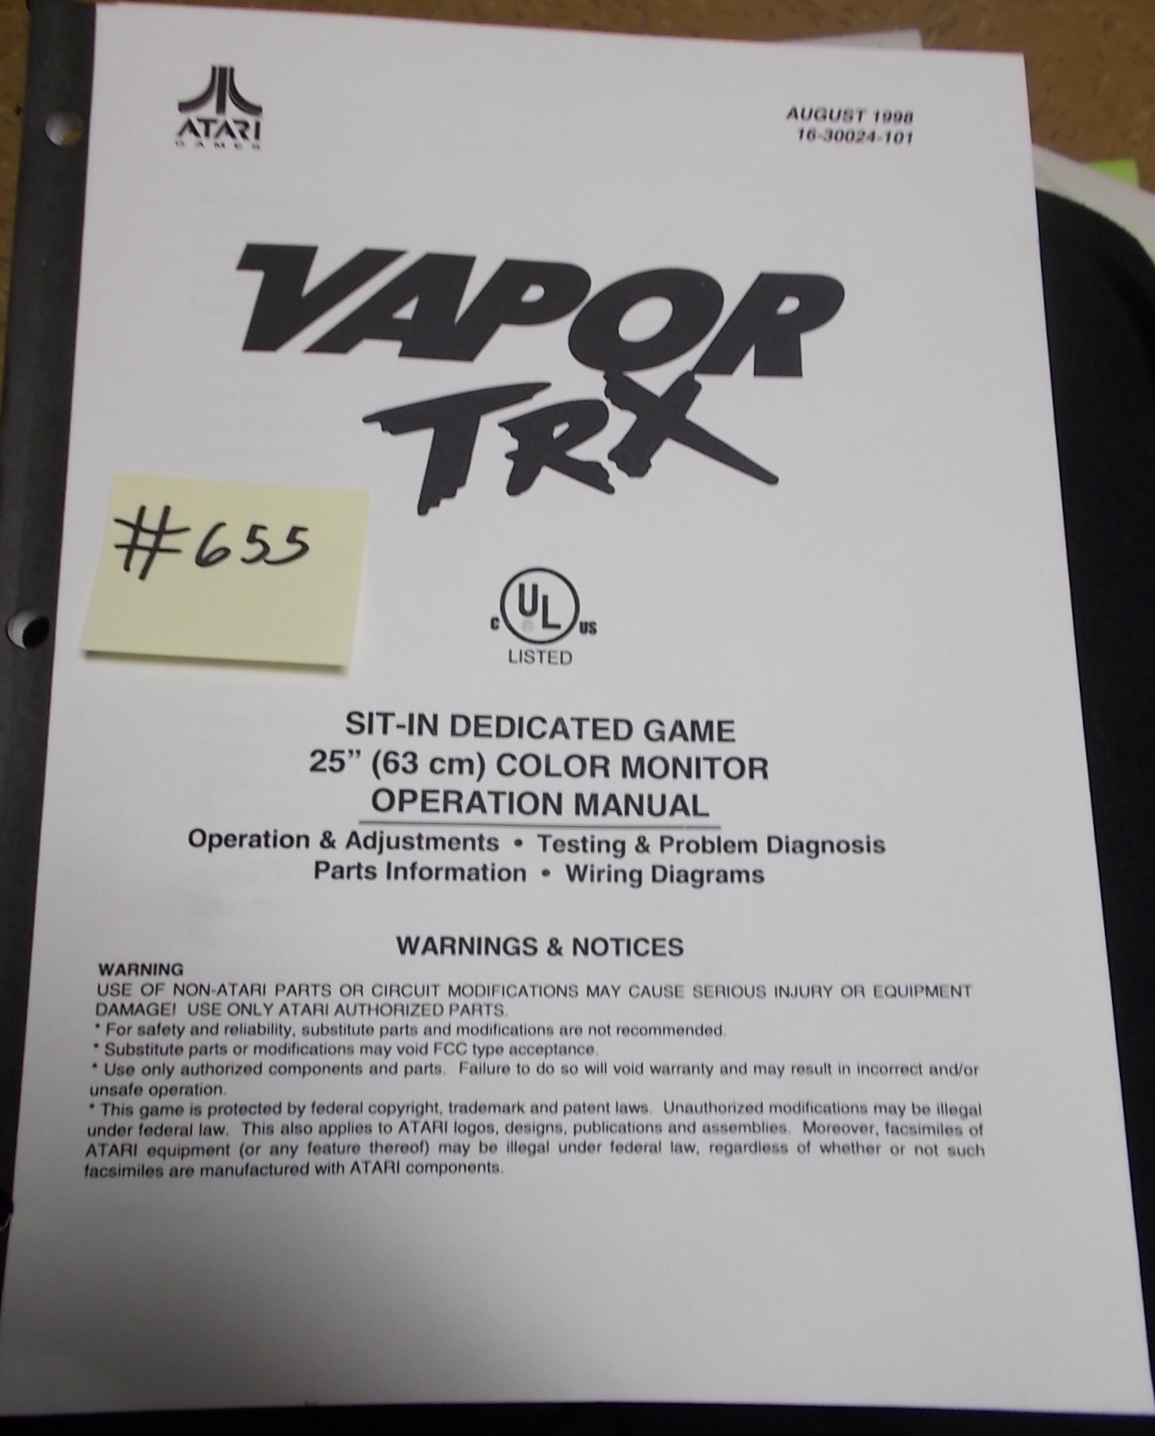 Vapor Trx Arcade Machine Game Operation Manual 655 For Sale By Atari Wiring Diagram Free Shipping